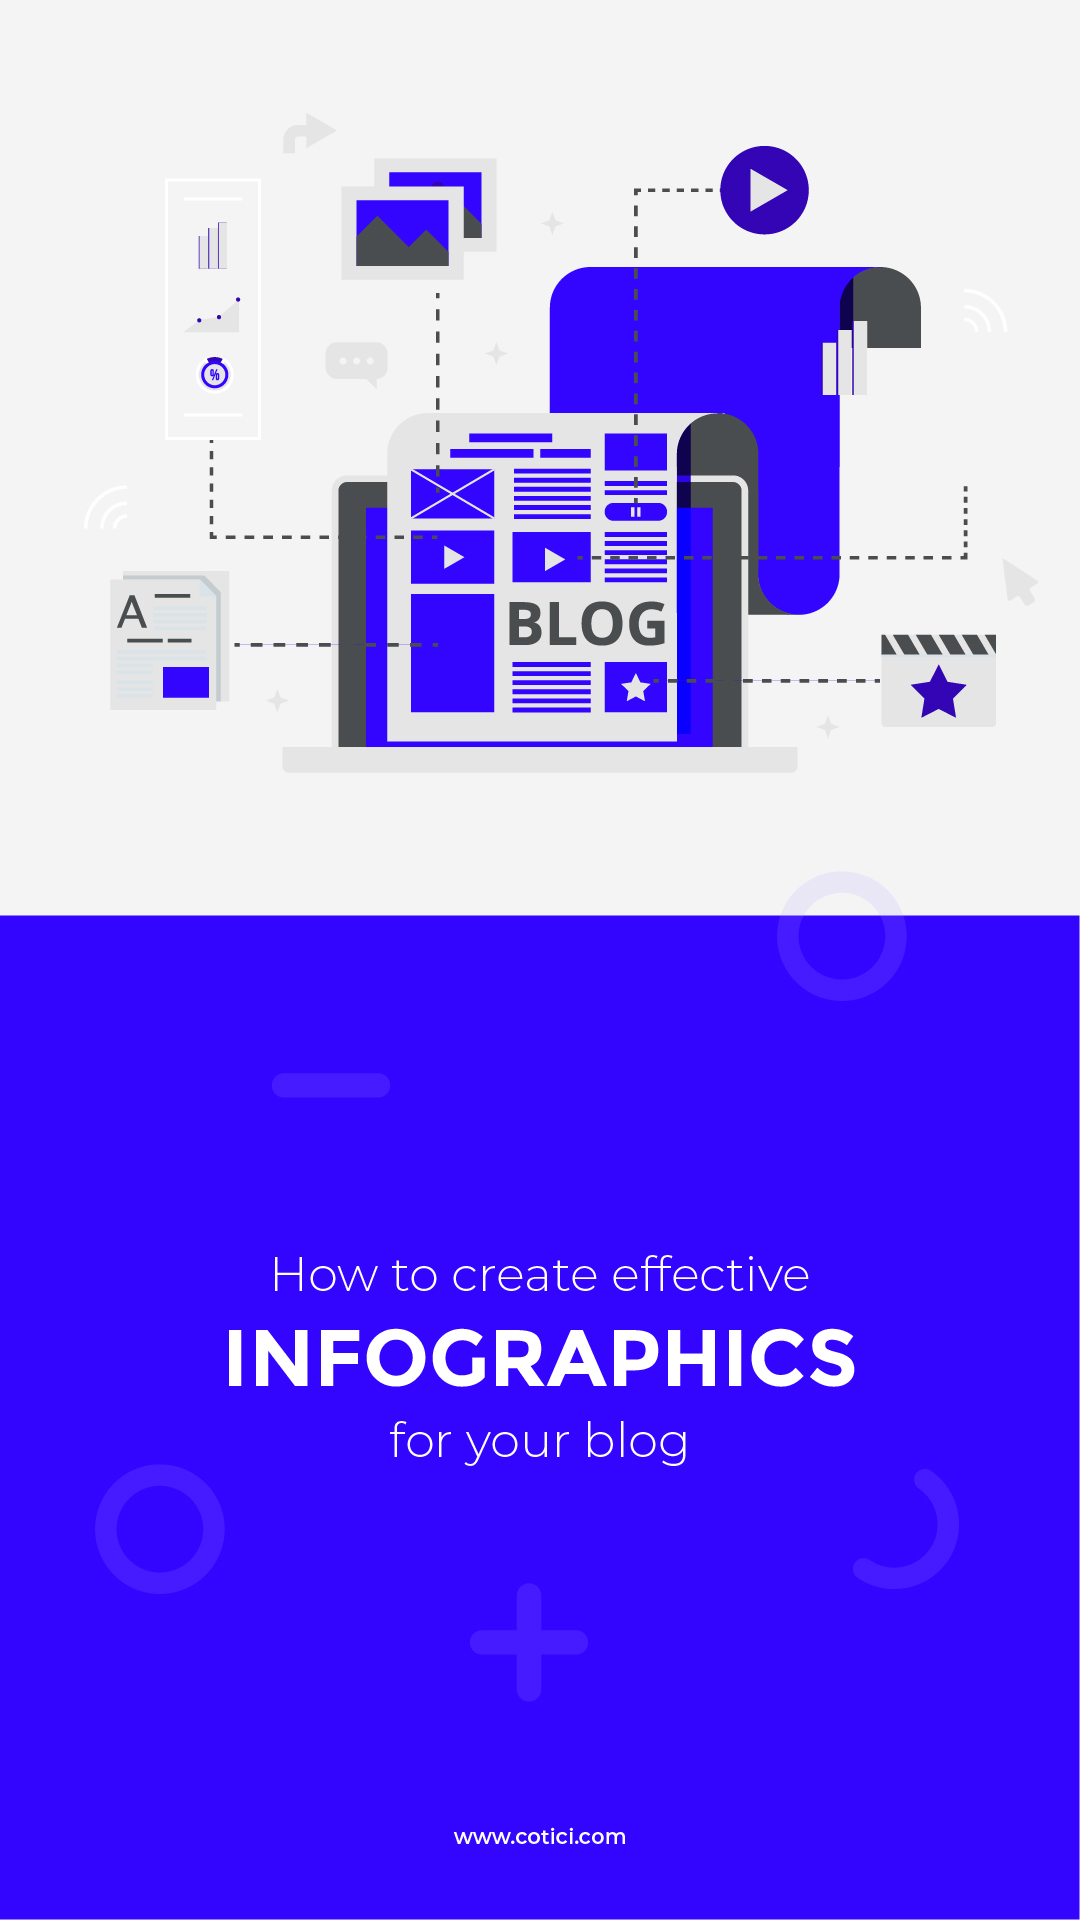 how to create effective Infographics for your blog.jpg